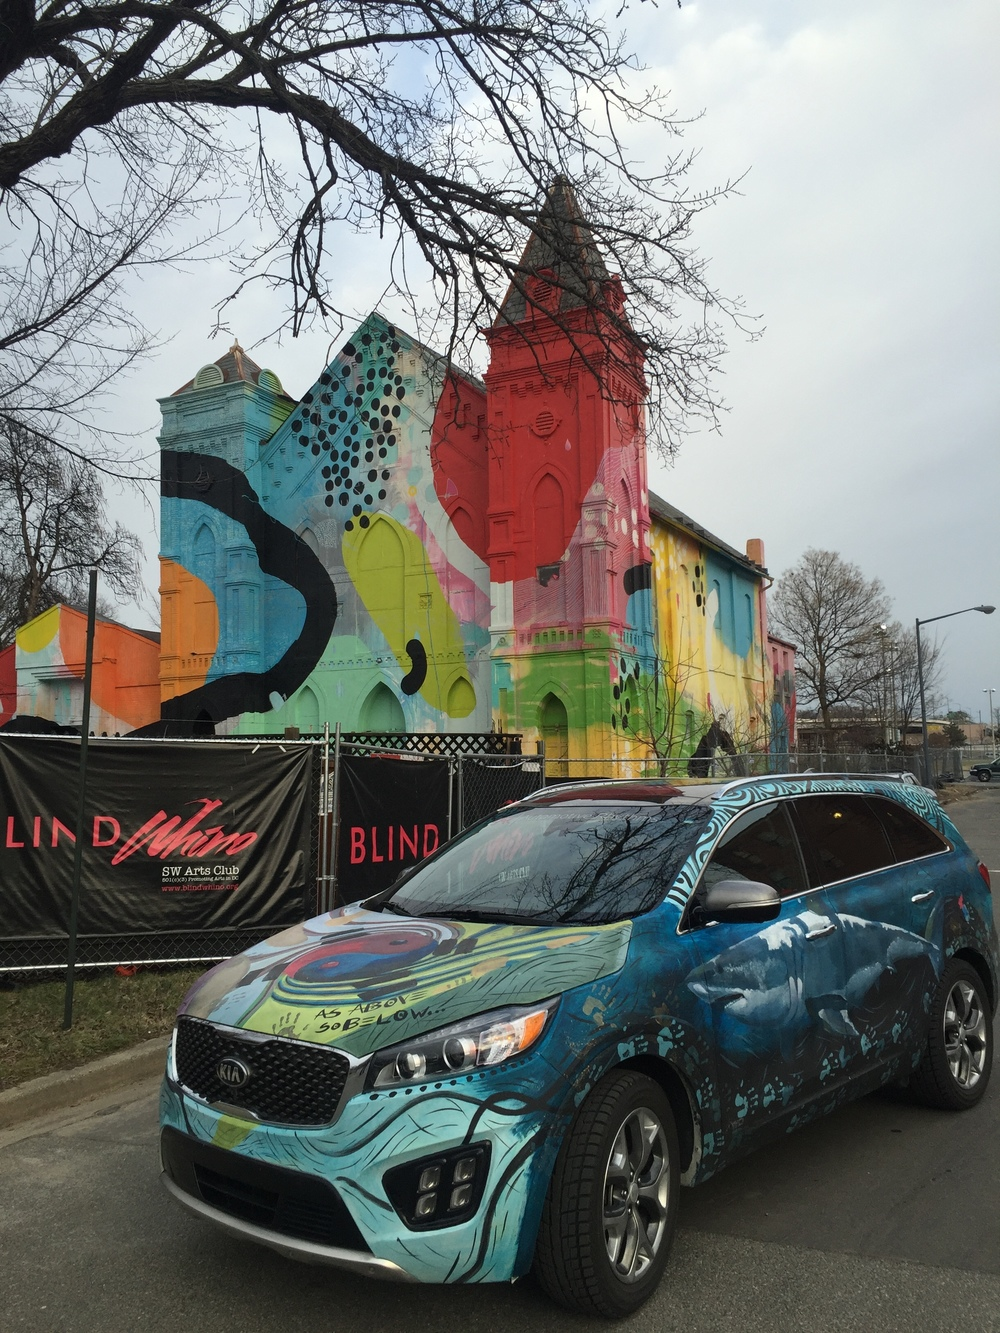 Kia Sorento Art Car - Blind Whino Art Club